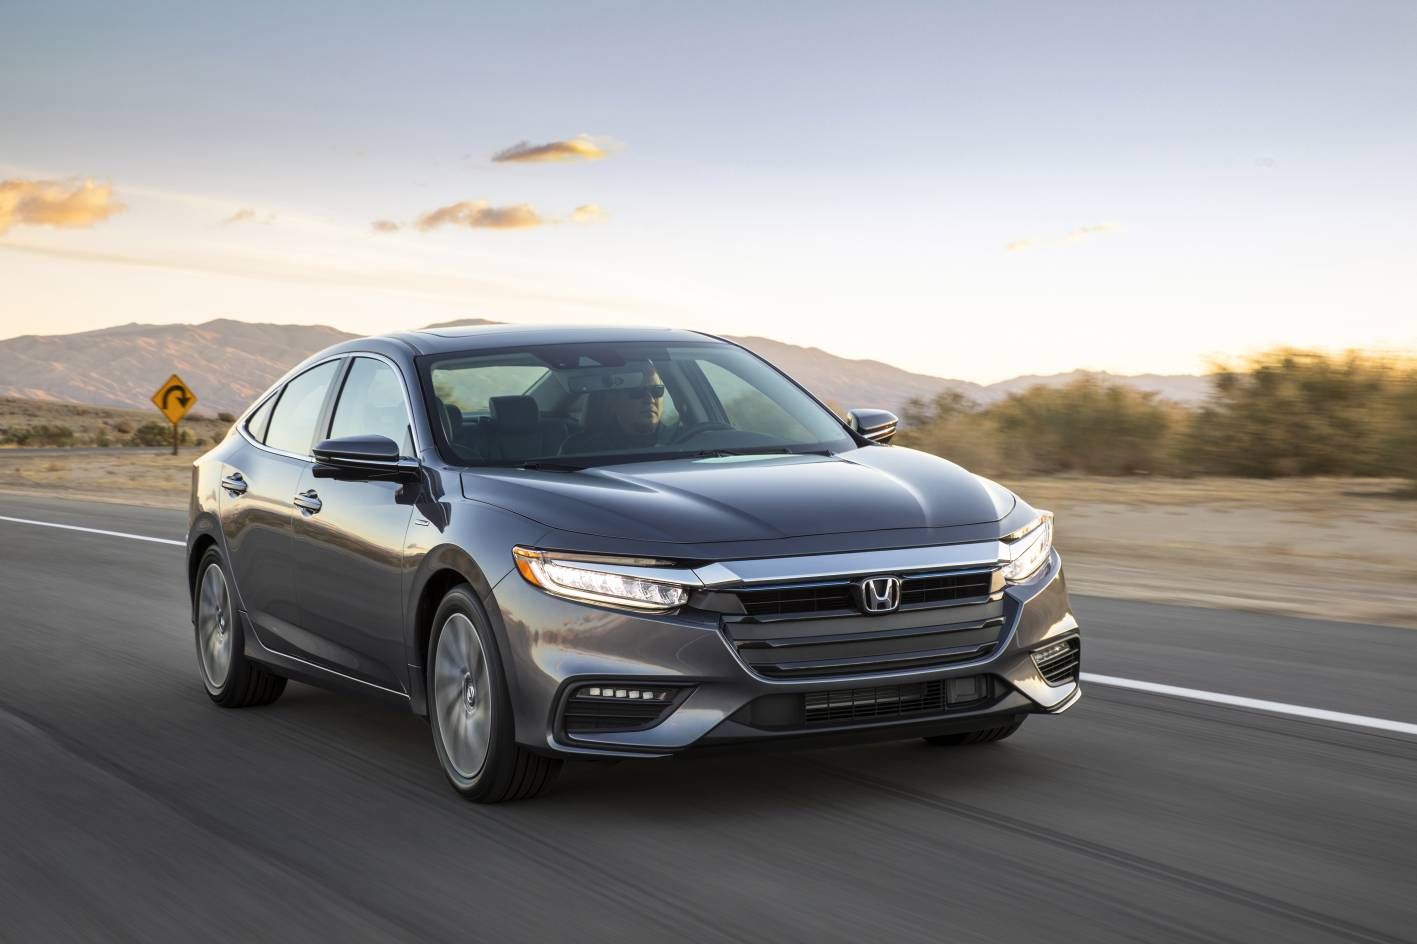 Honda Civic Econ >> All-New 2019 Honda Insight production model revealed - ForceGT.com